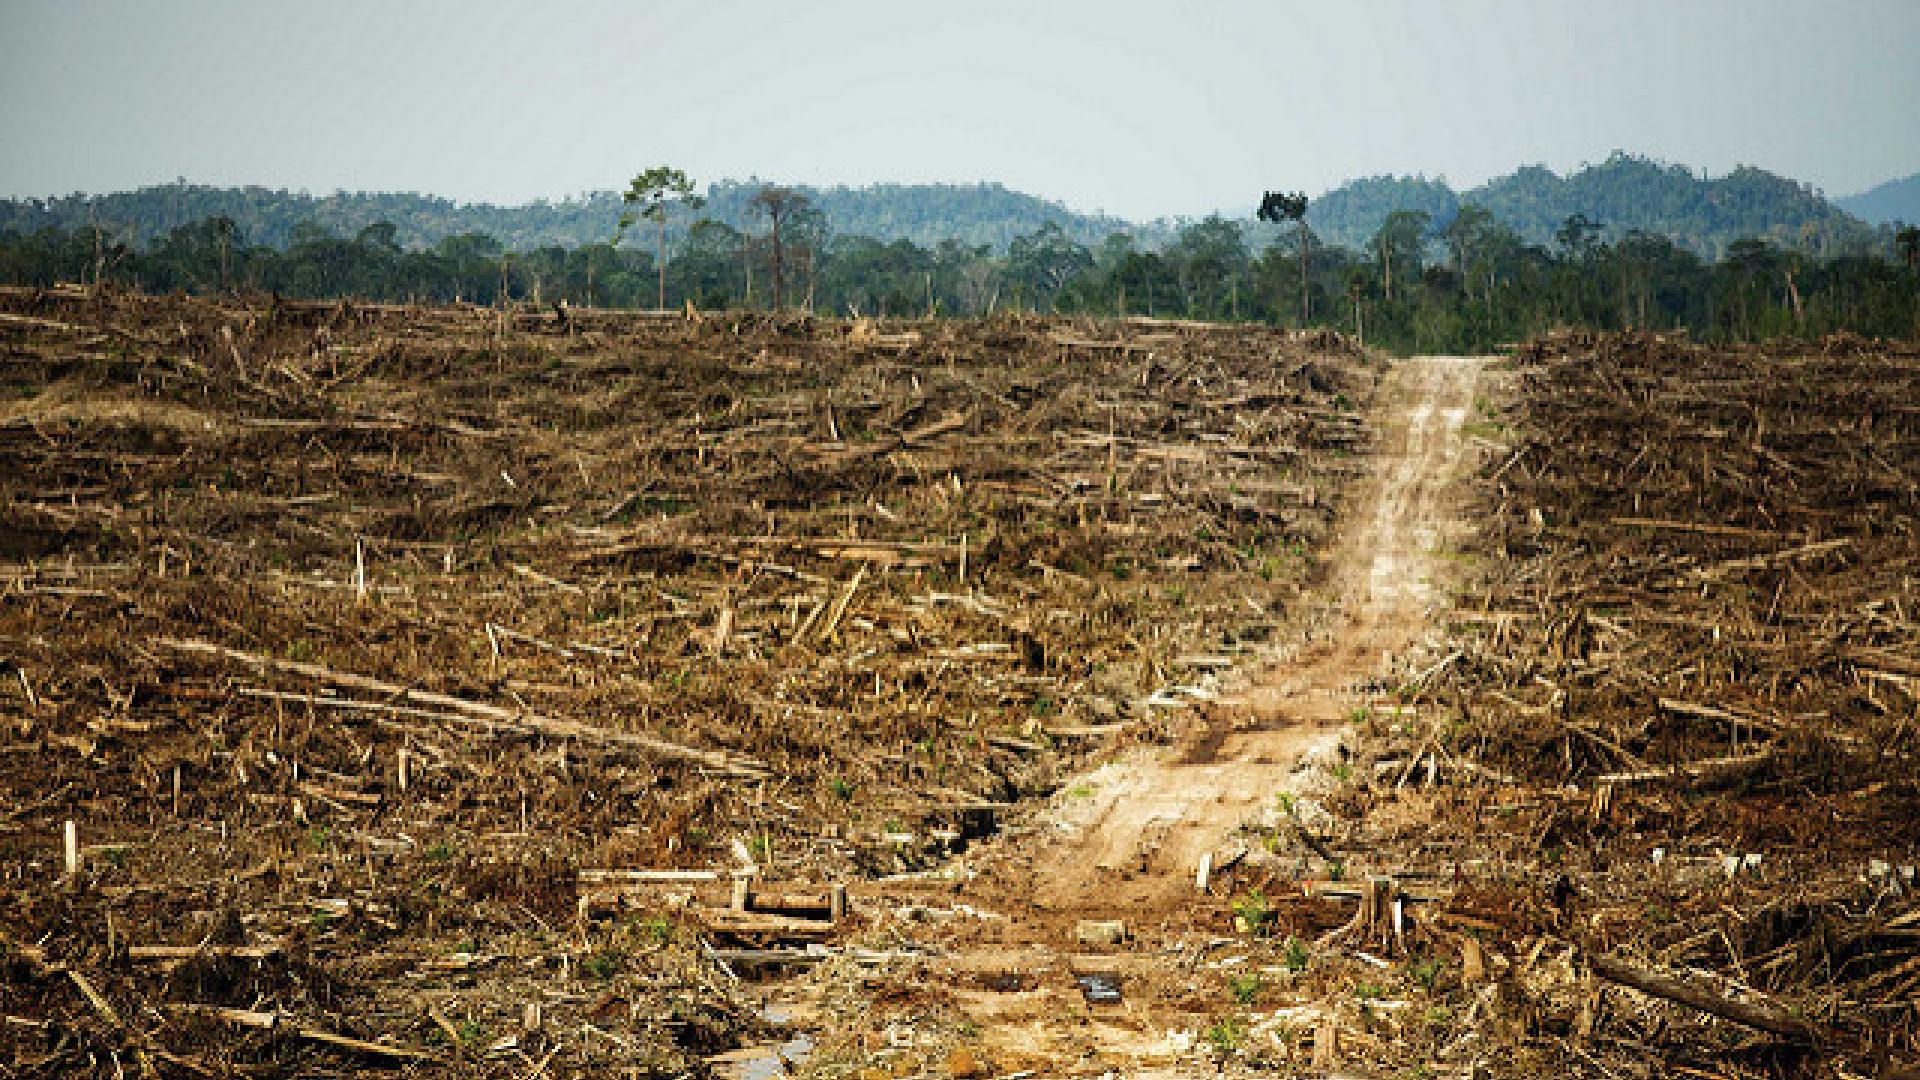 Photo shows forest cleared for palm oil